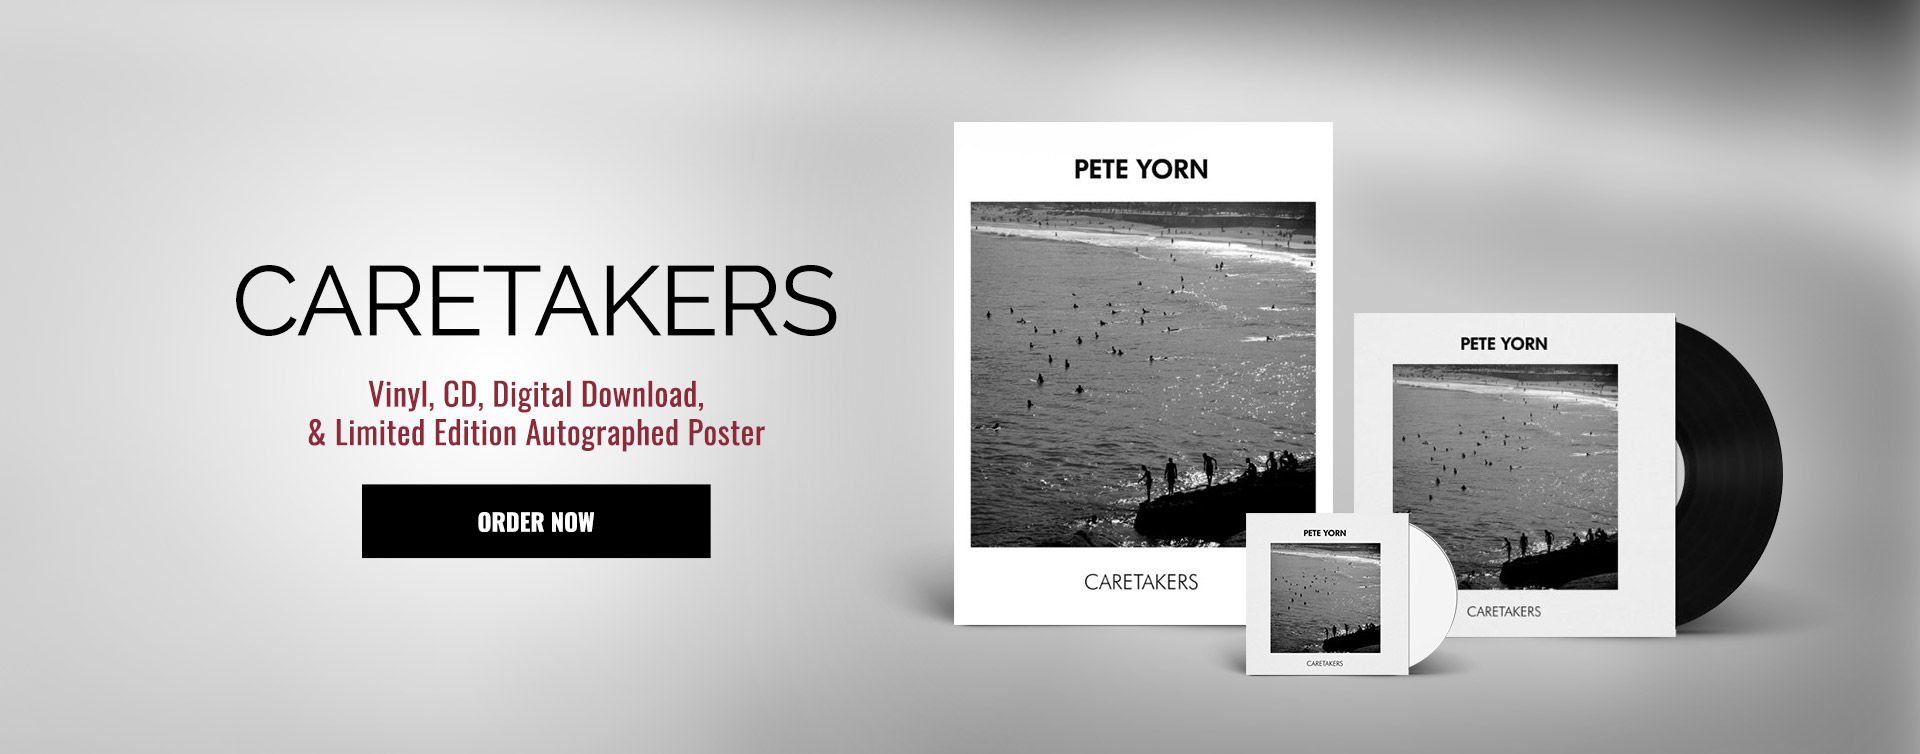 Order The New Caretakers Album and Bundles